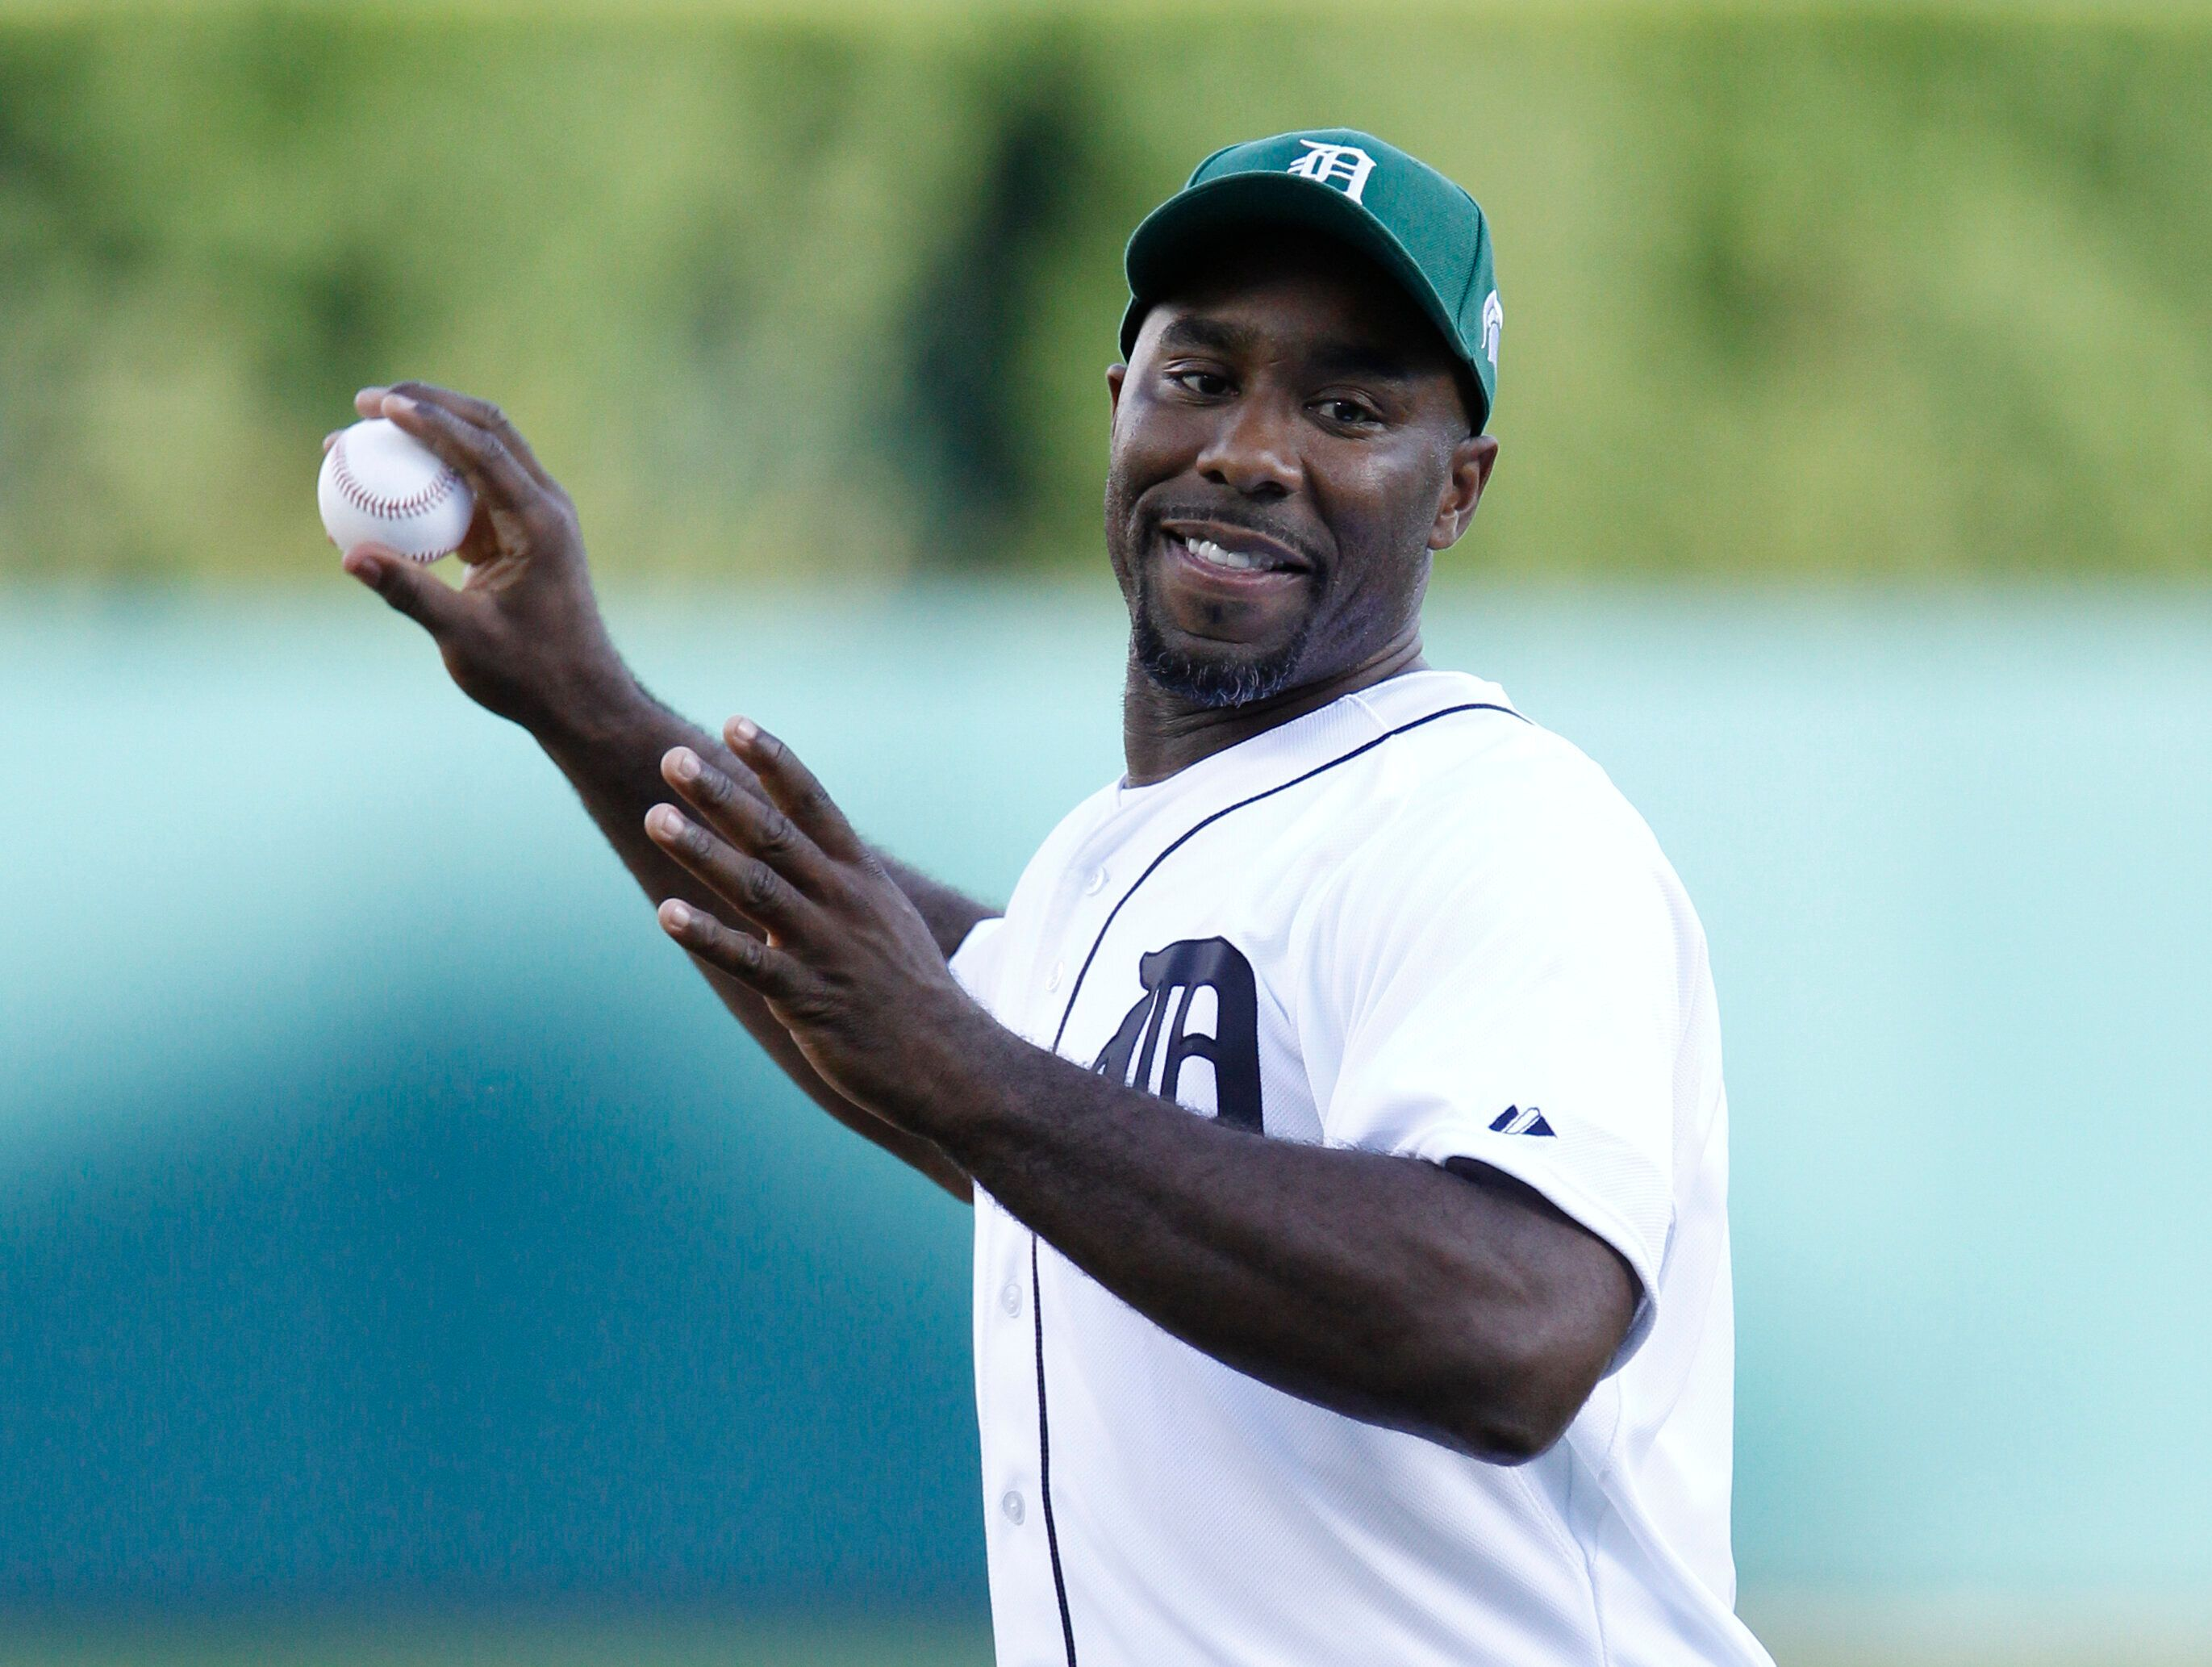 Mateen Cleaves throws out a ceremonial first pitch before the Detroit Tigers baseball game against the Texas Rangers on Aug.